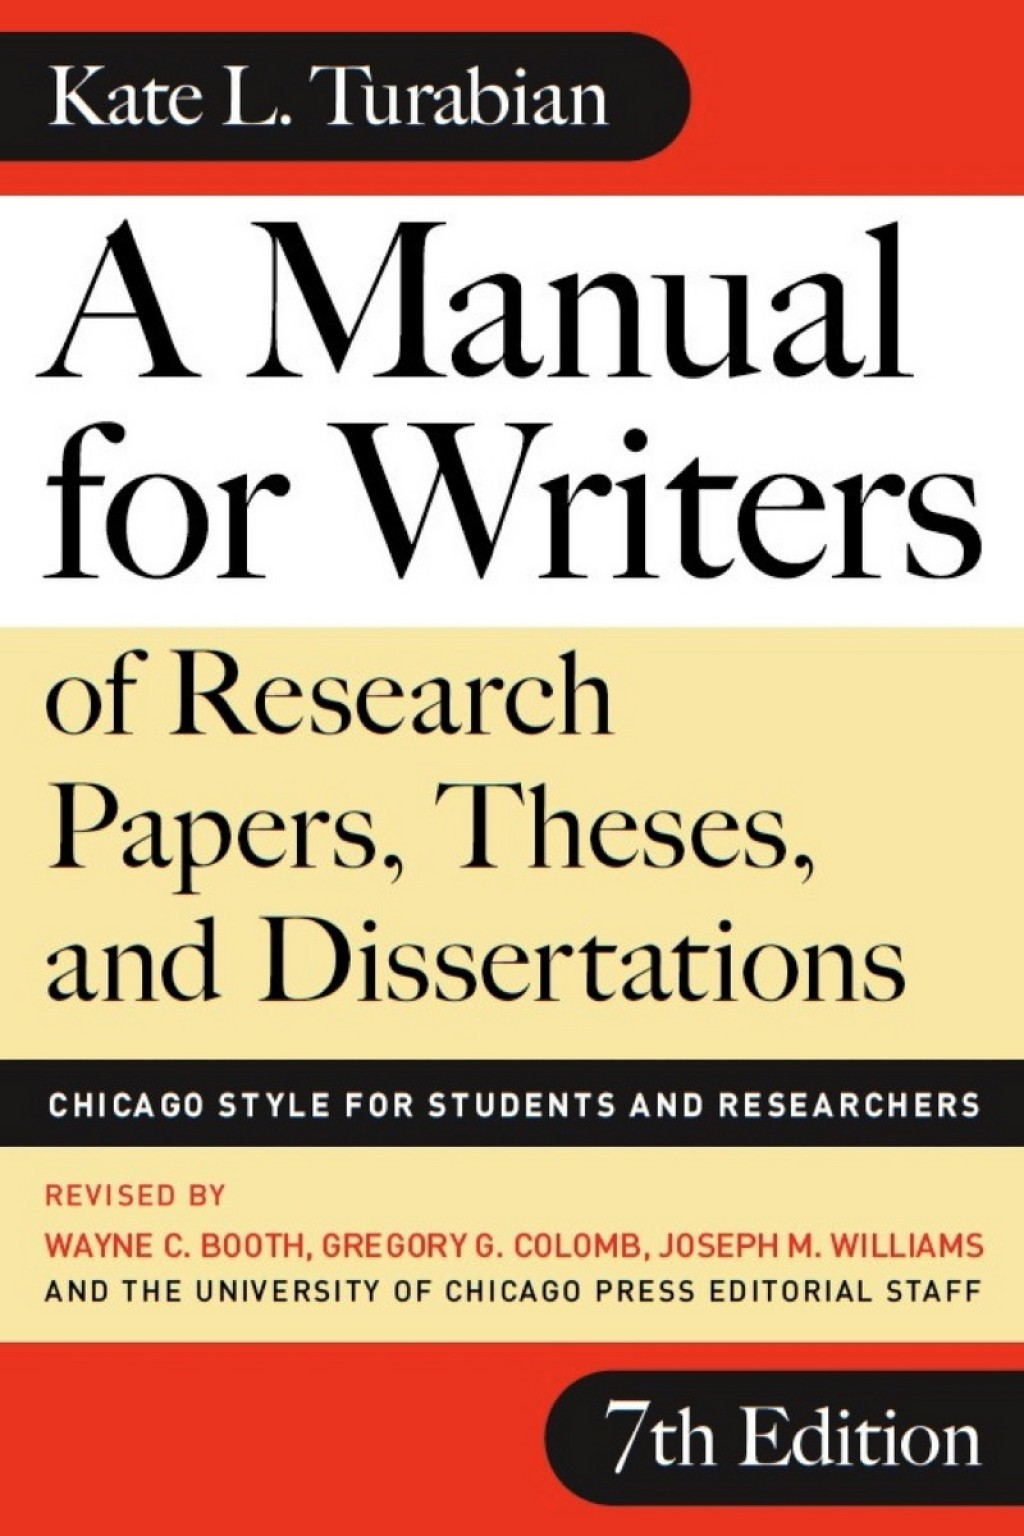 008 Manual For Writers Of Researchs Theses And Dissertations Frontcover Magnificent Research Papers A Amazon 9th Edition 8th 13 Large